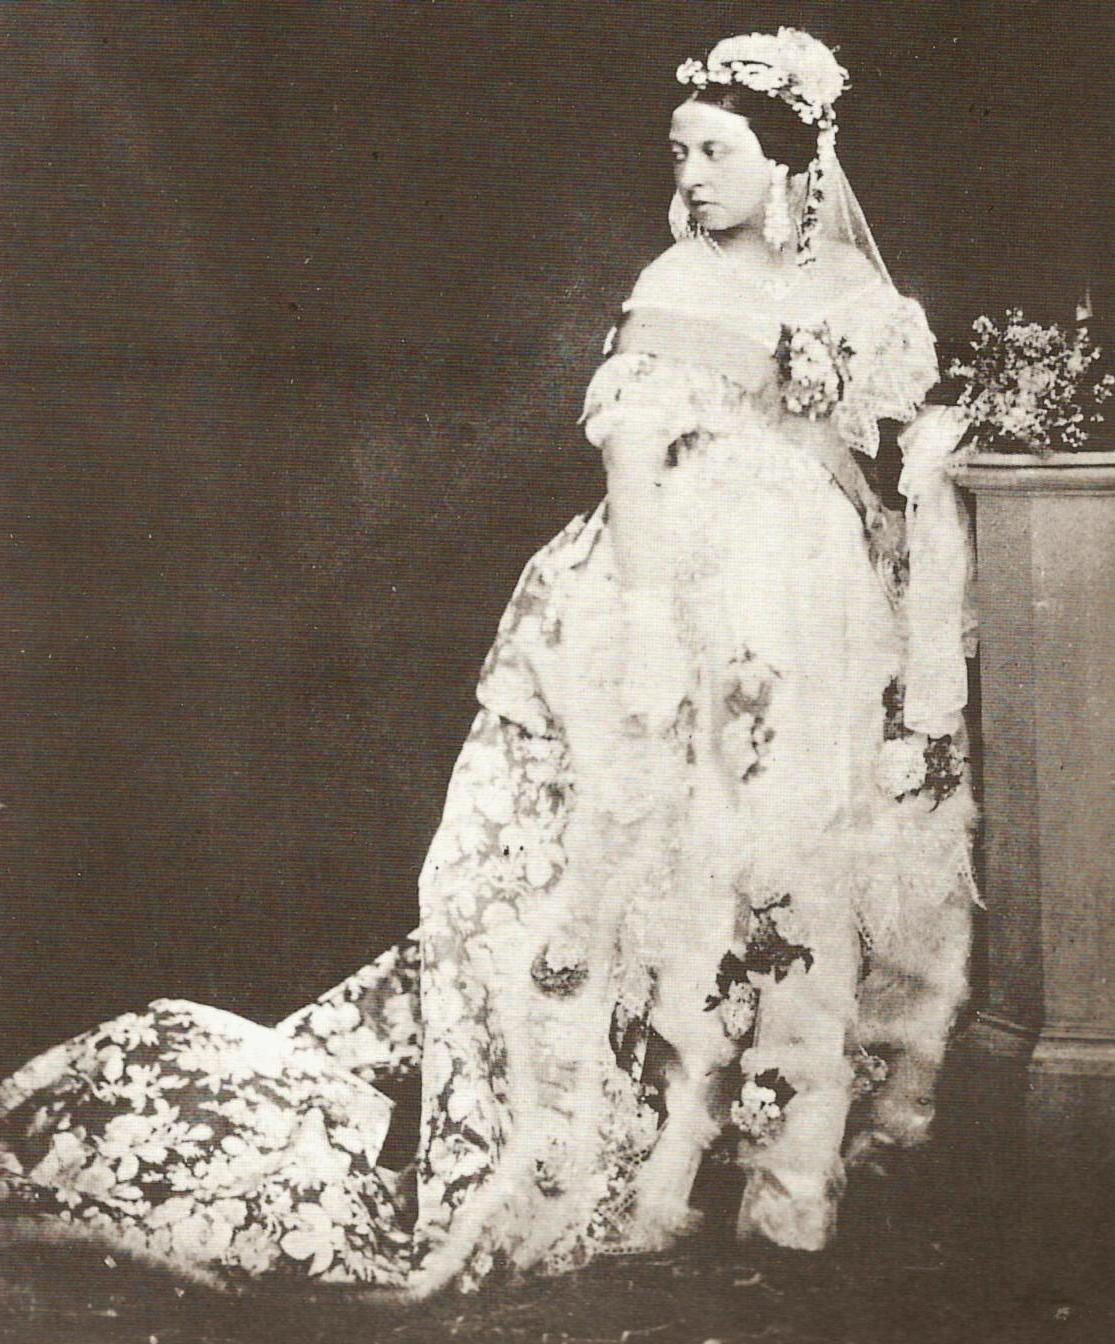 Frame One: Queen Victoria